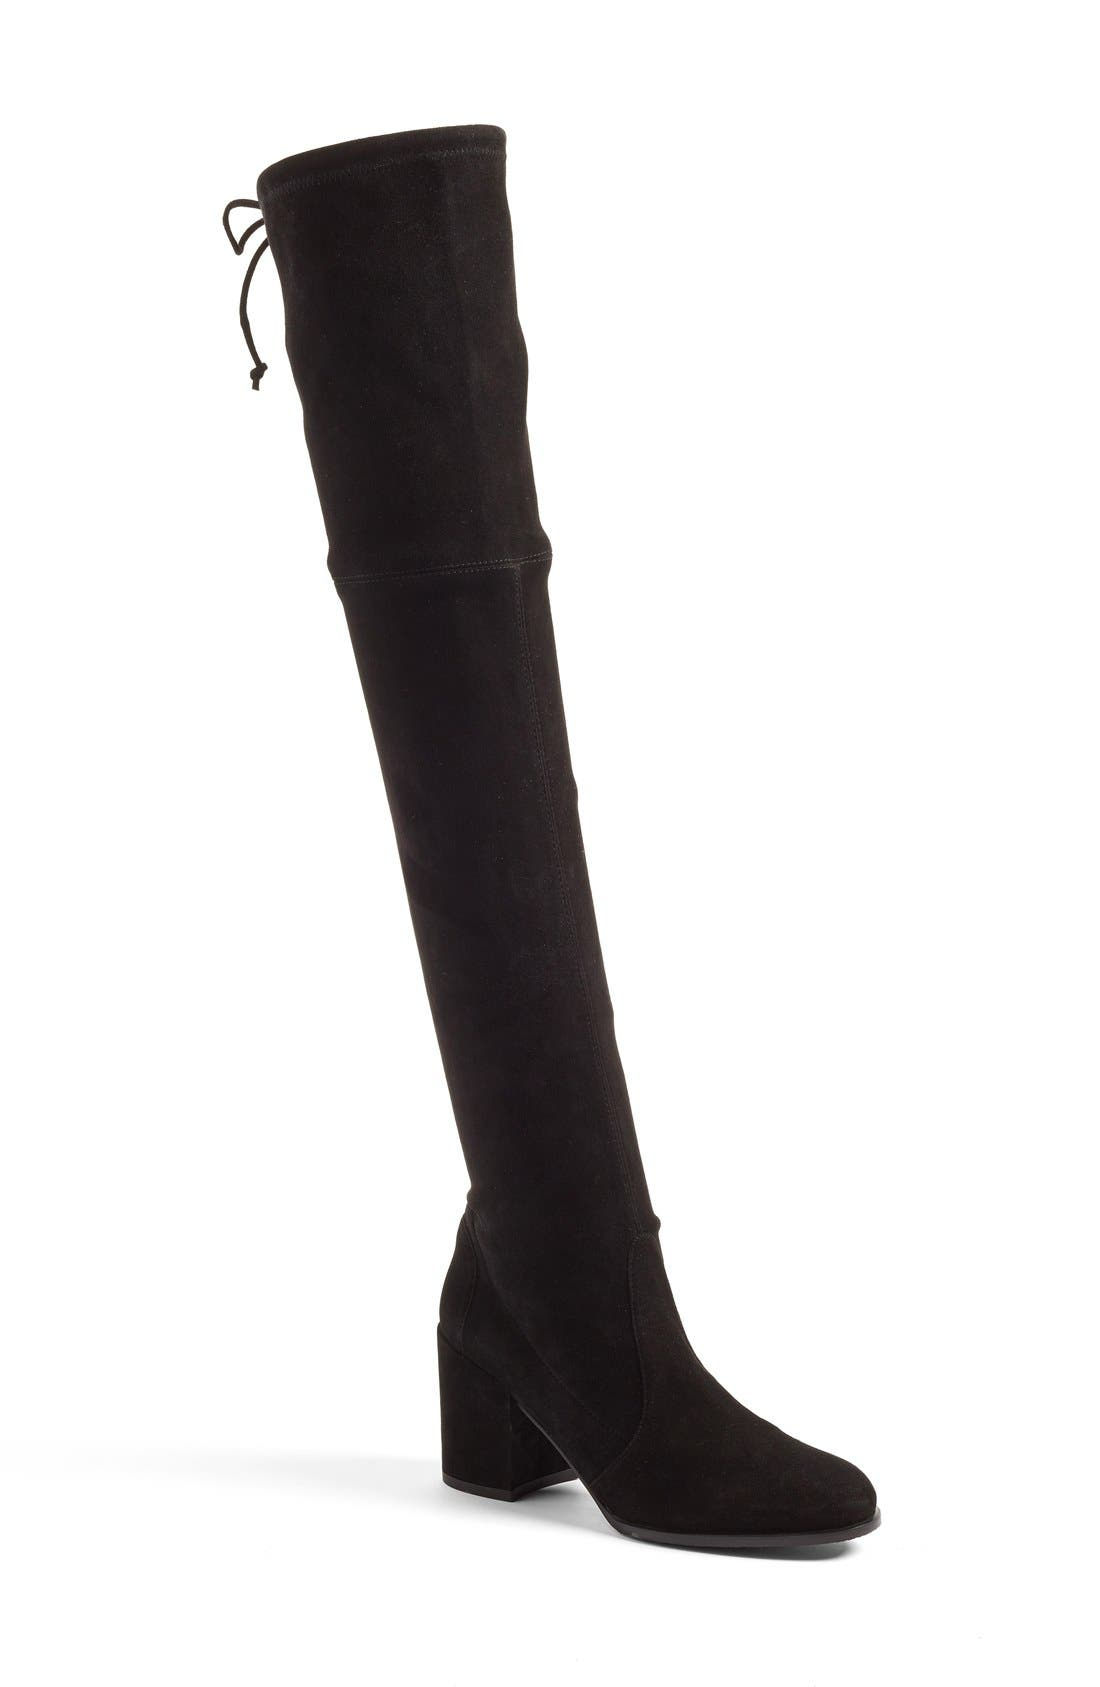 Tieland Over the Knee Boot,                         Main,                         color, Black Suede